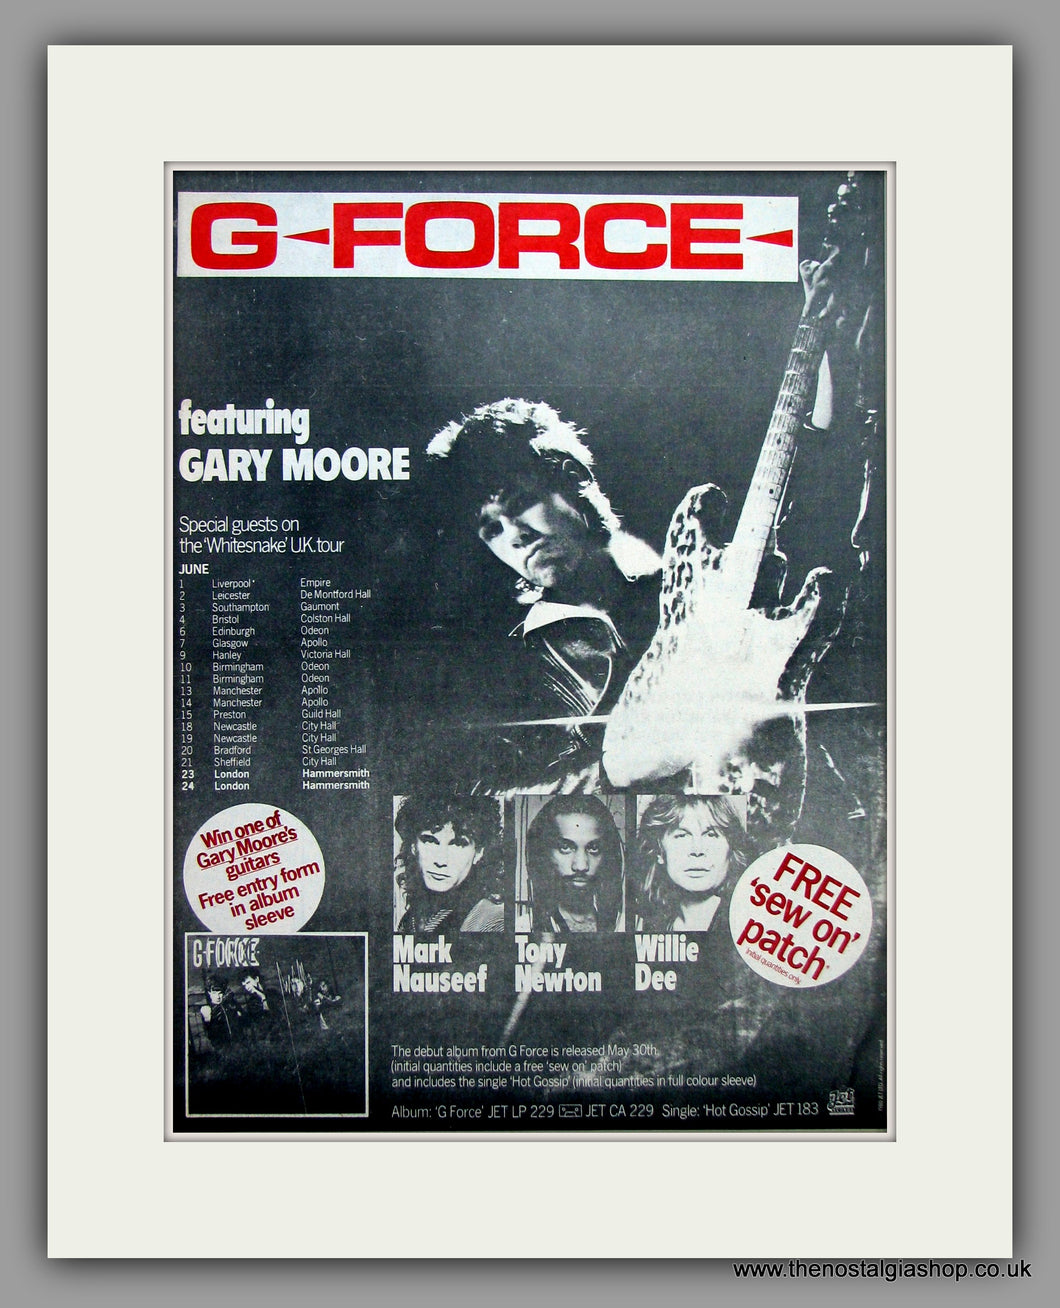 G Force with Gary Moore UK Tour Dates.  Original Vintage Advert 1980 (ref AD10440)